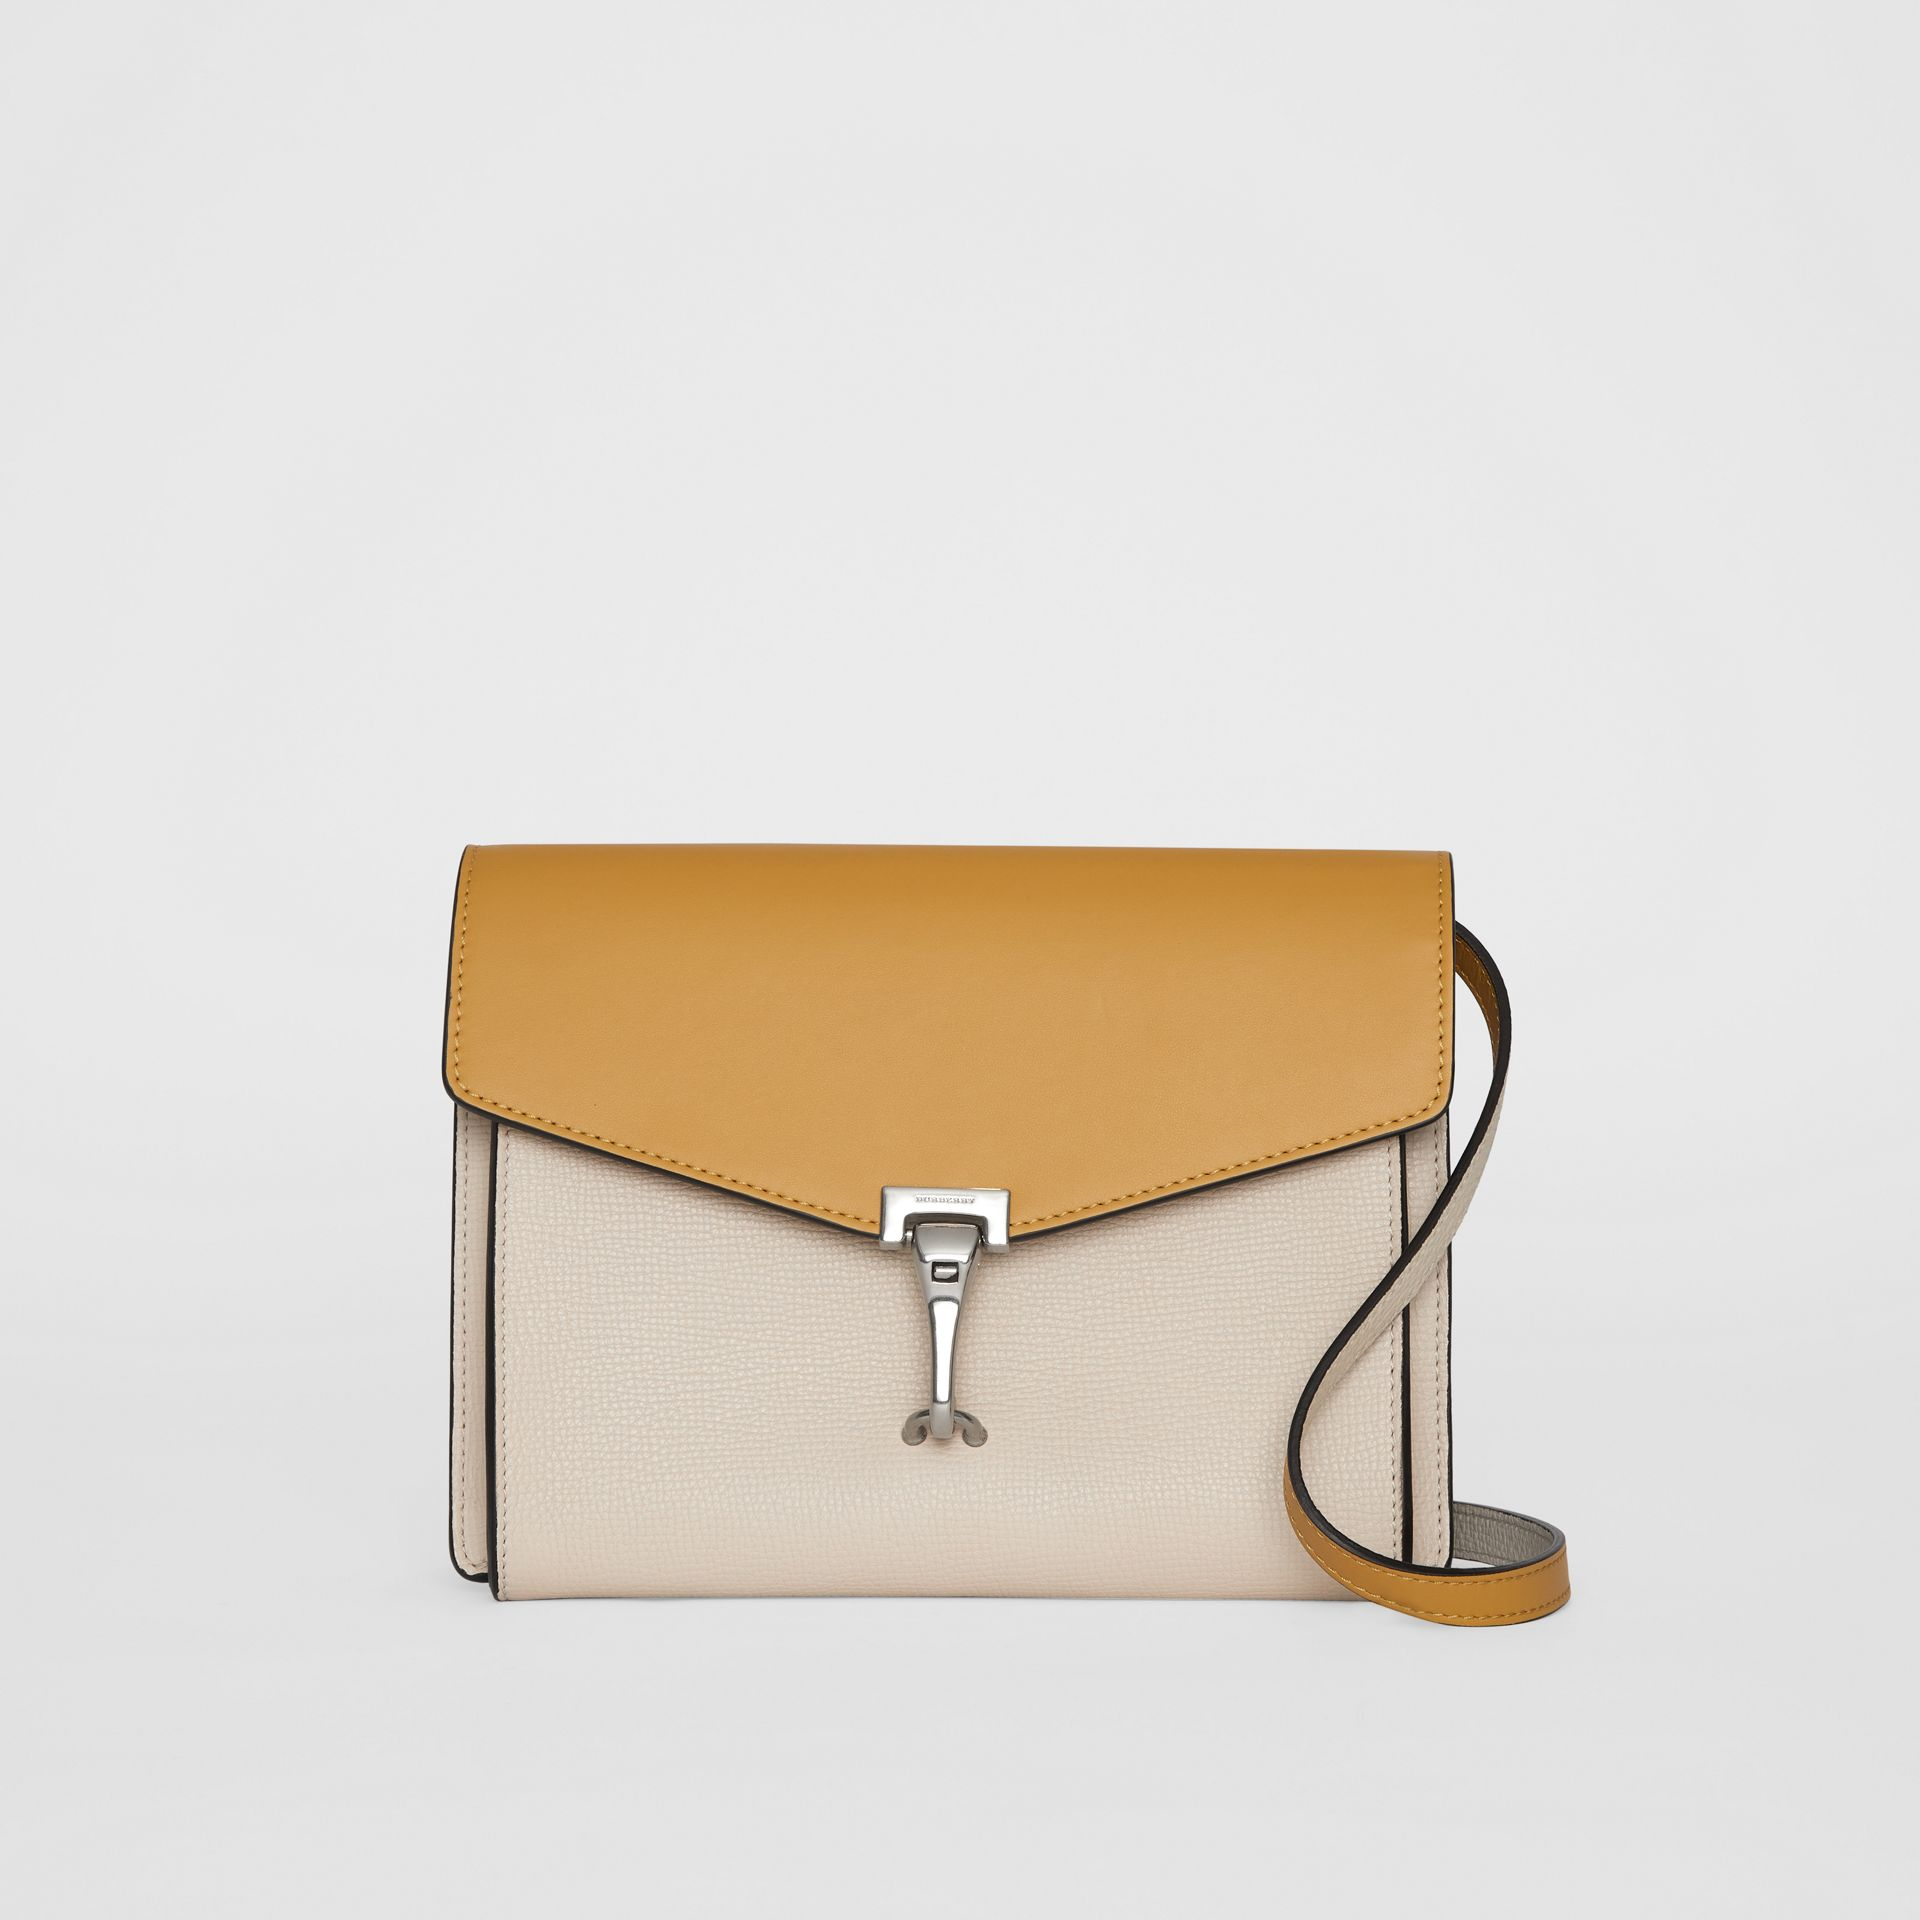 Two-tone Leather Crossbody Bag in Limestone/cornflower Yellow - Women | Burberry United Kingdom - gallery image 0